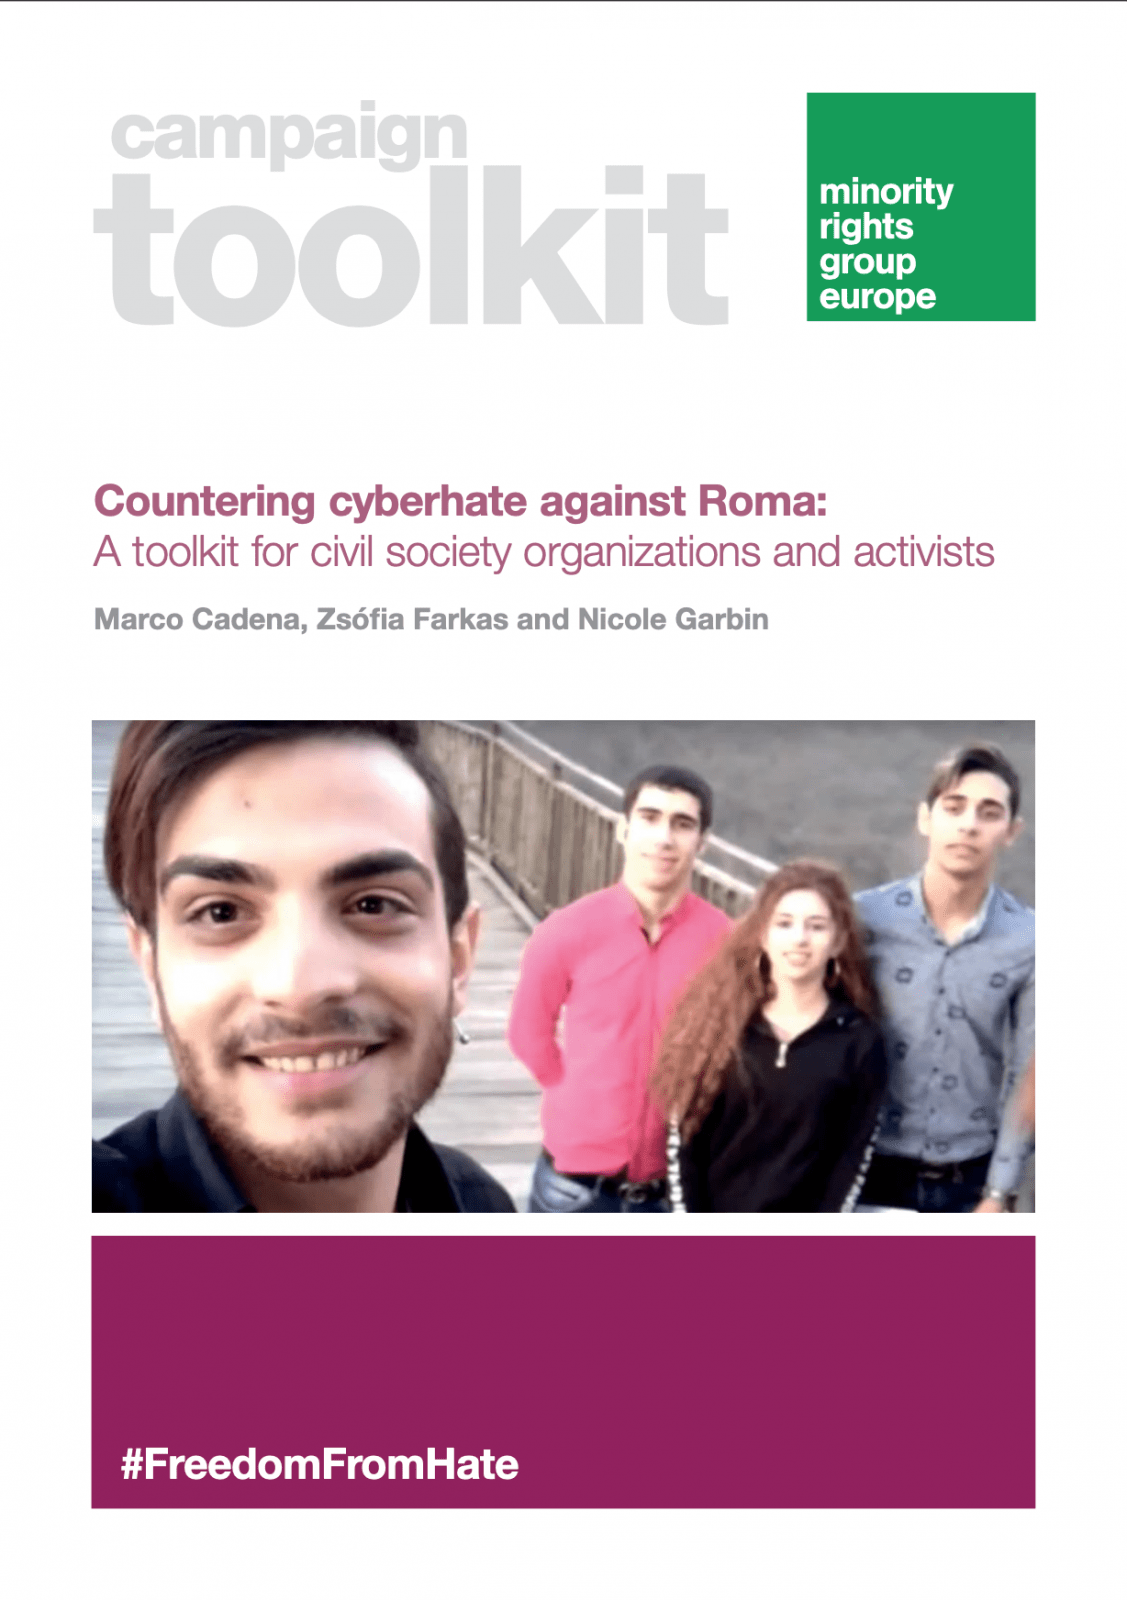 Campaign Toolkit - Countering cyberhate against Roma